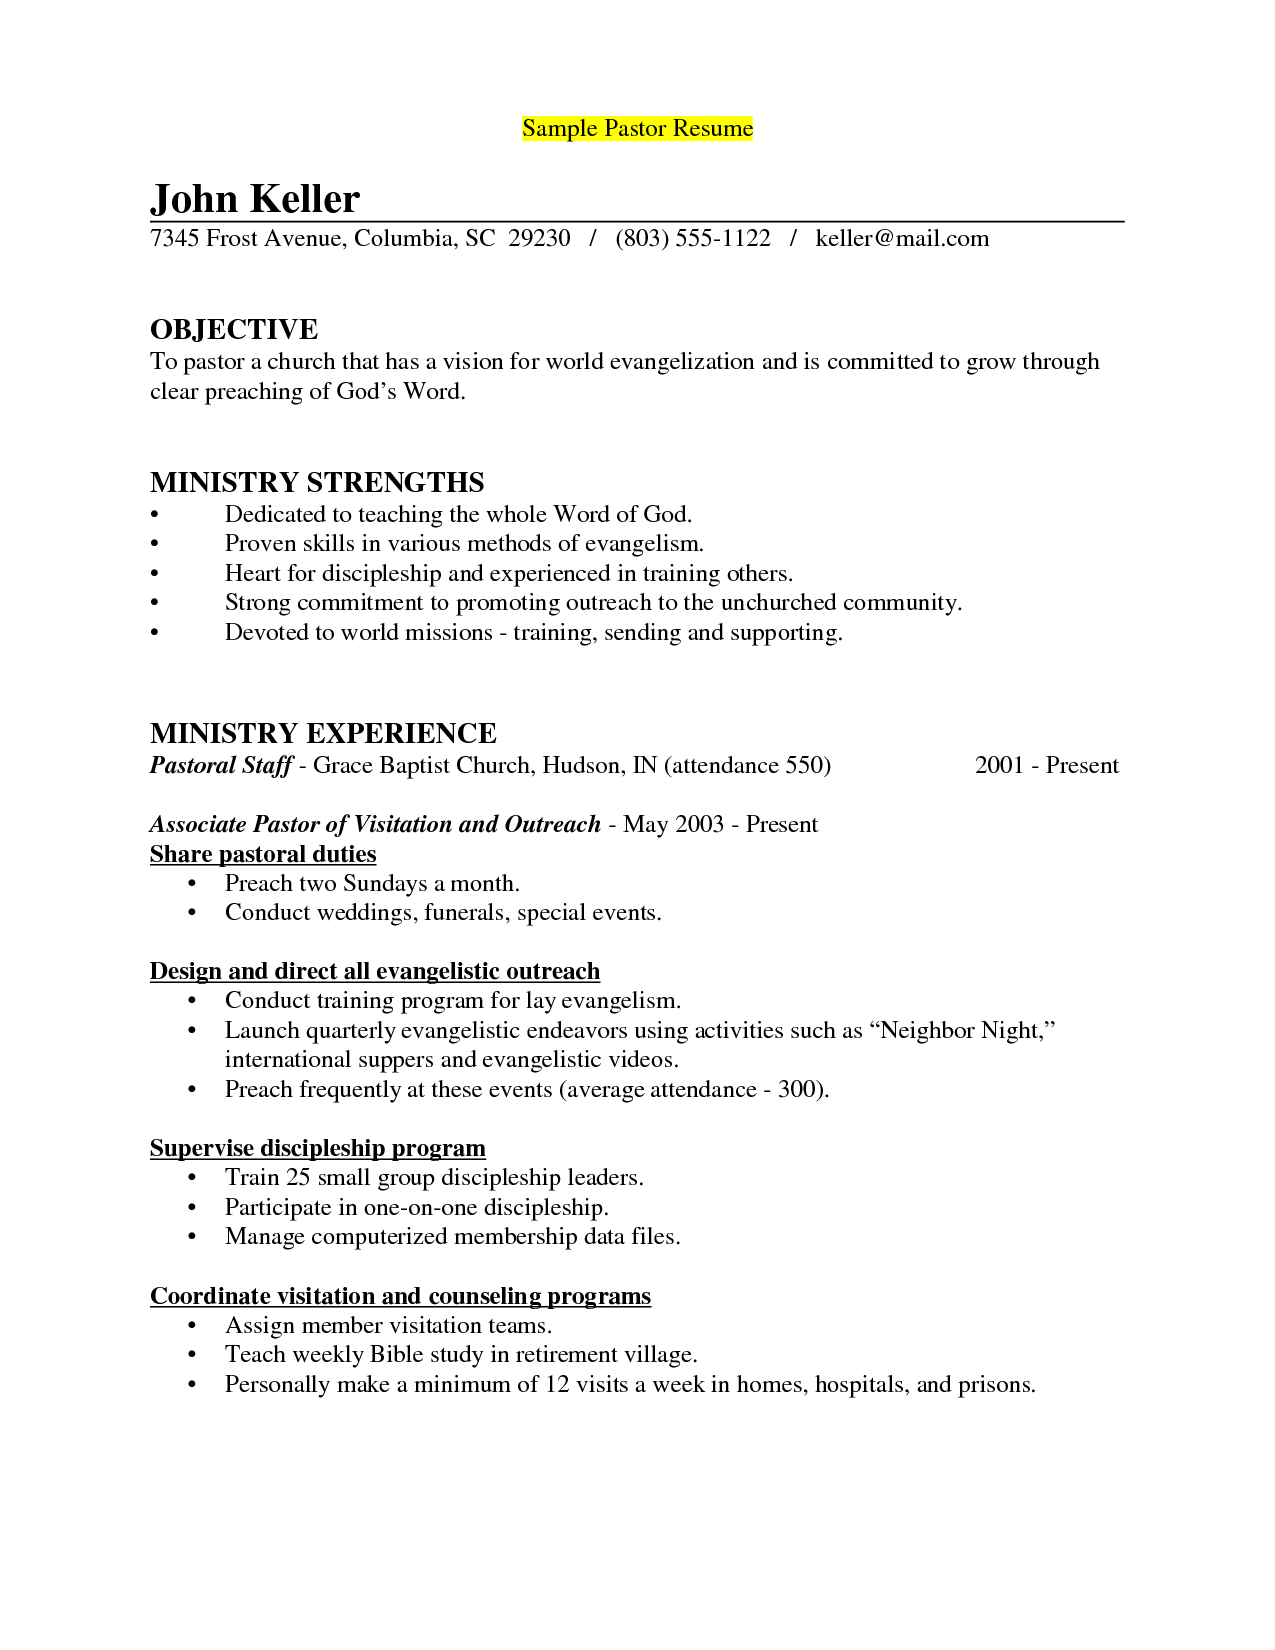 Sample Teen Resume Sample Of A Pastors Resume  Sample Resumes For Senior Pastors